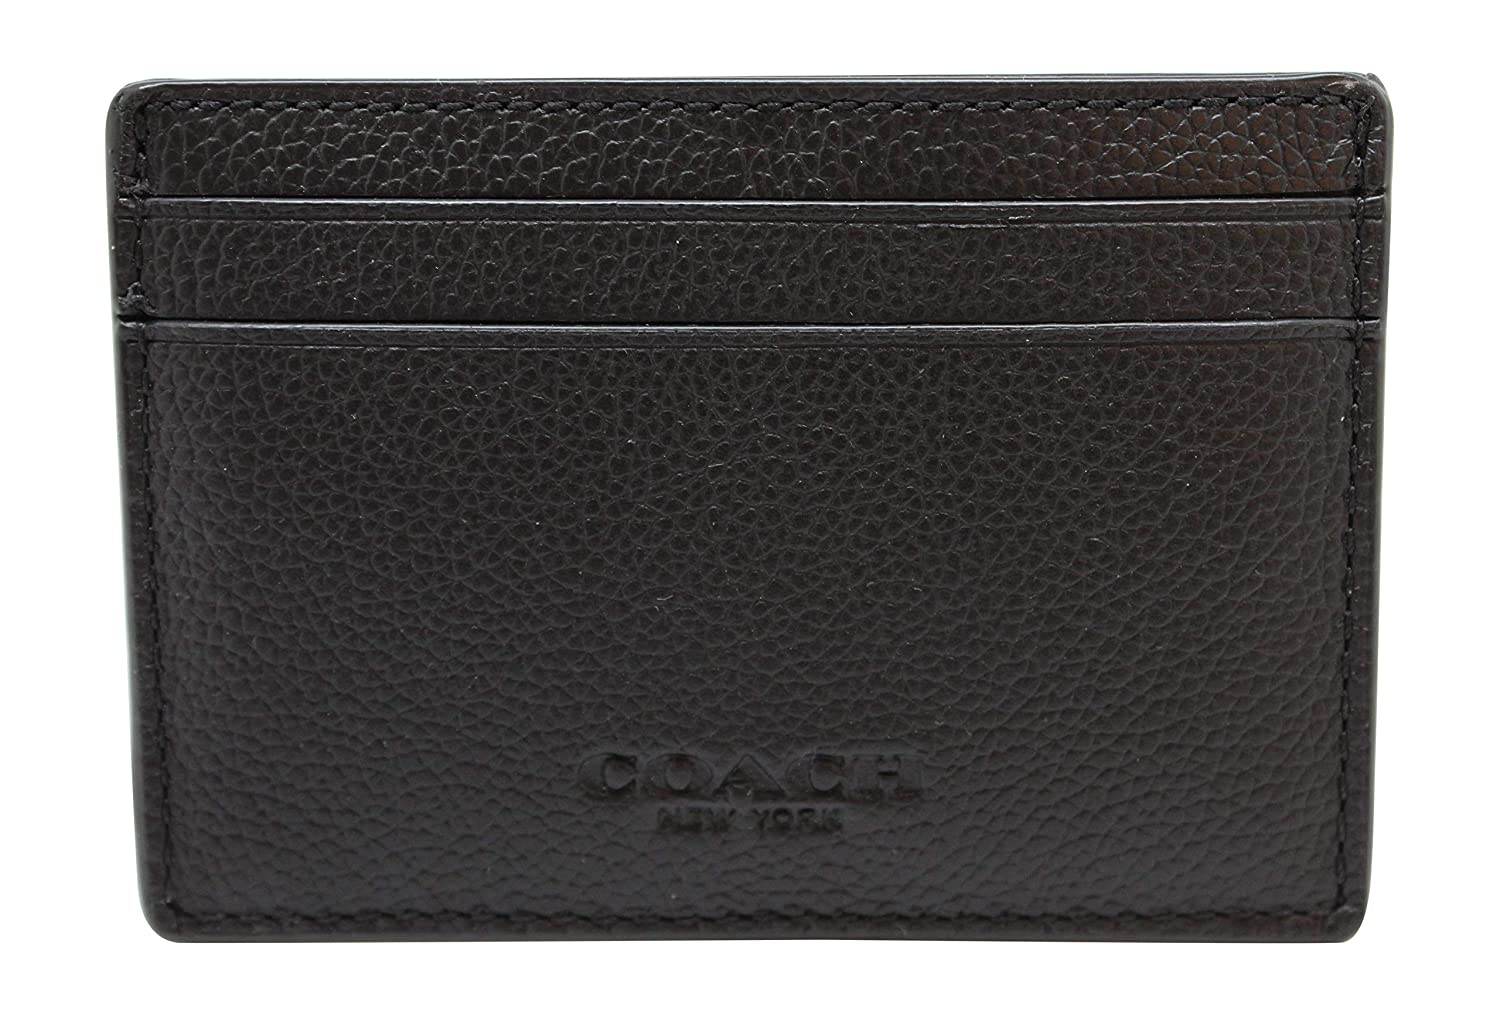 9aa6f61f68 Coach Mens Money Clip Card Case in sport calf leather F75459 Black